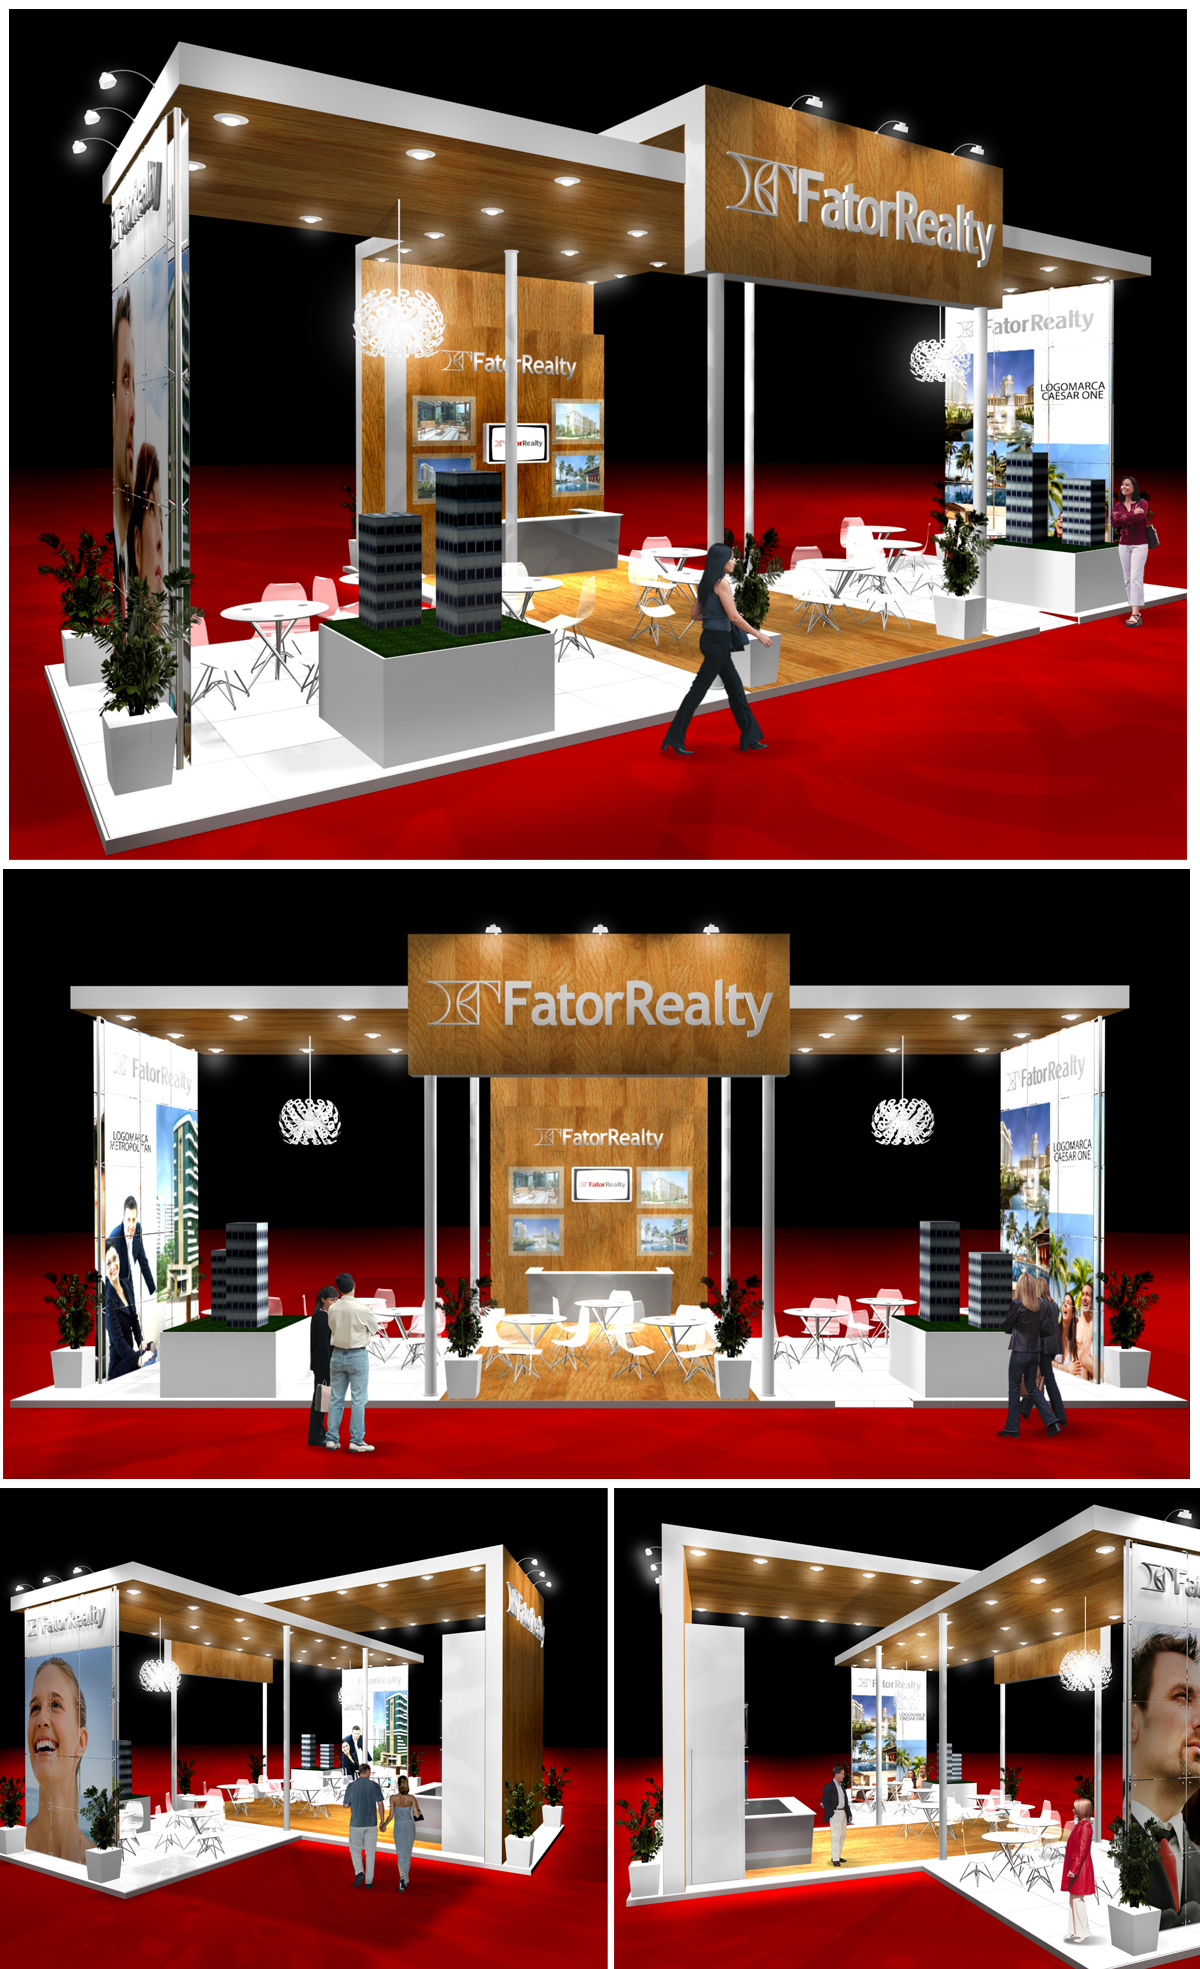 Fator Realty